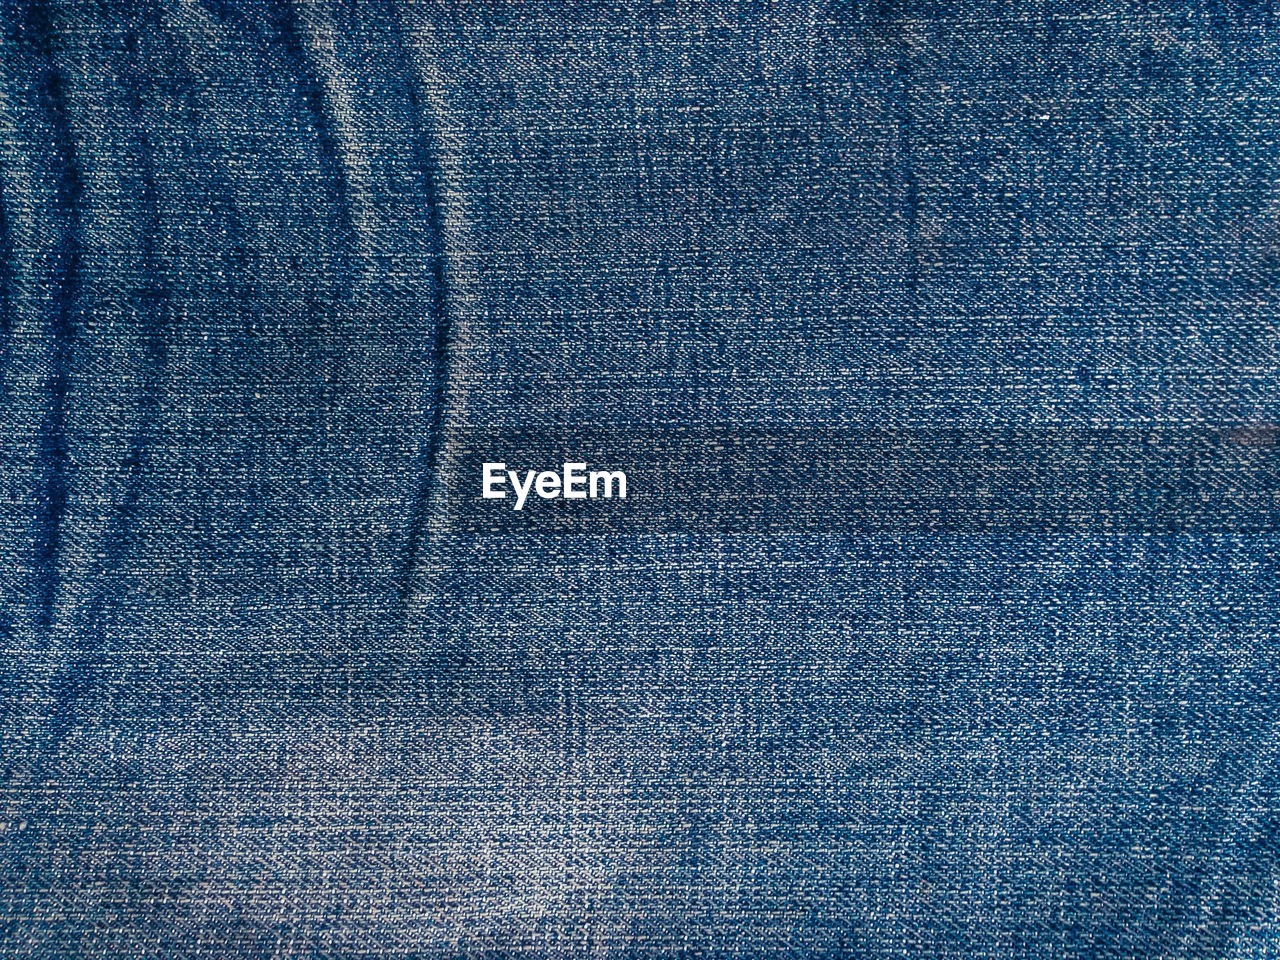 denim, textured, jeans, material, backgrounds, textile, casual clothing, clothing, blue, abstract, pattern, wave pattern, textured effect, close-up, fiber, no people